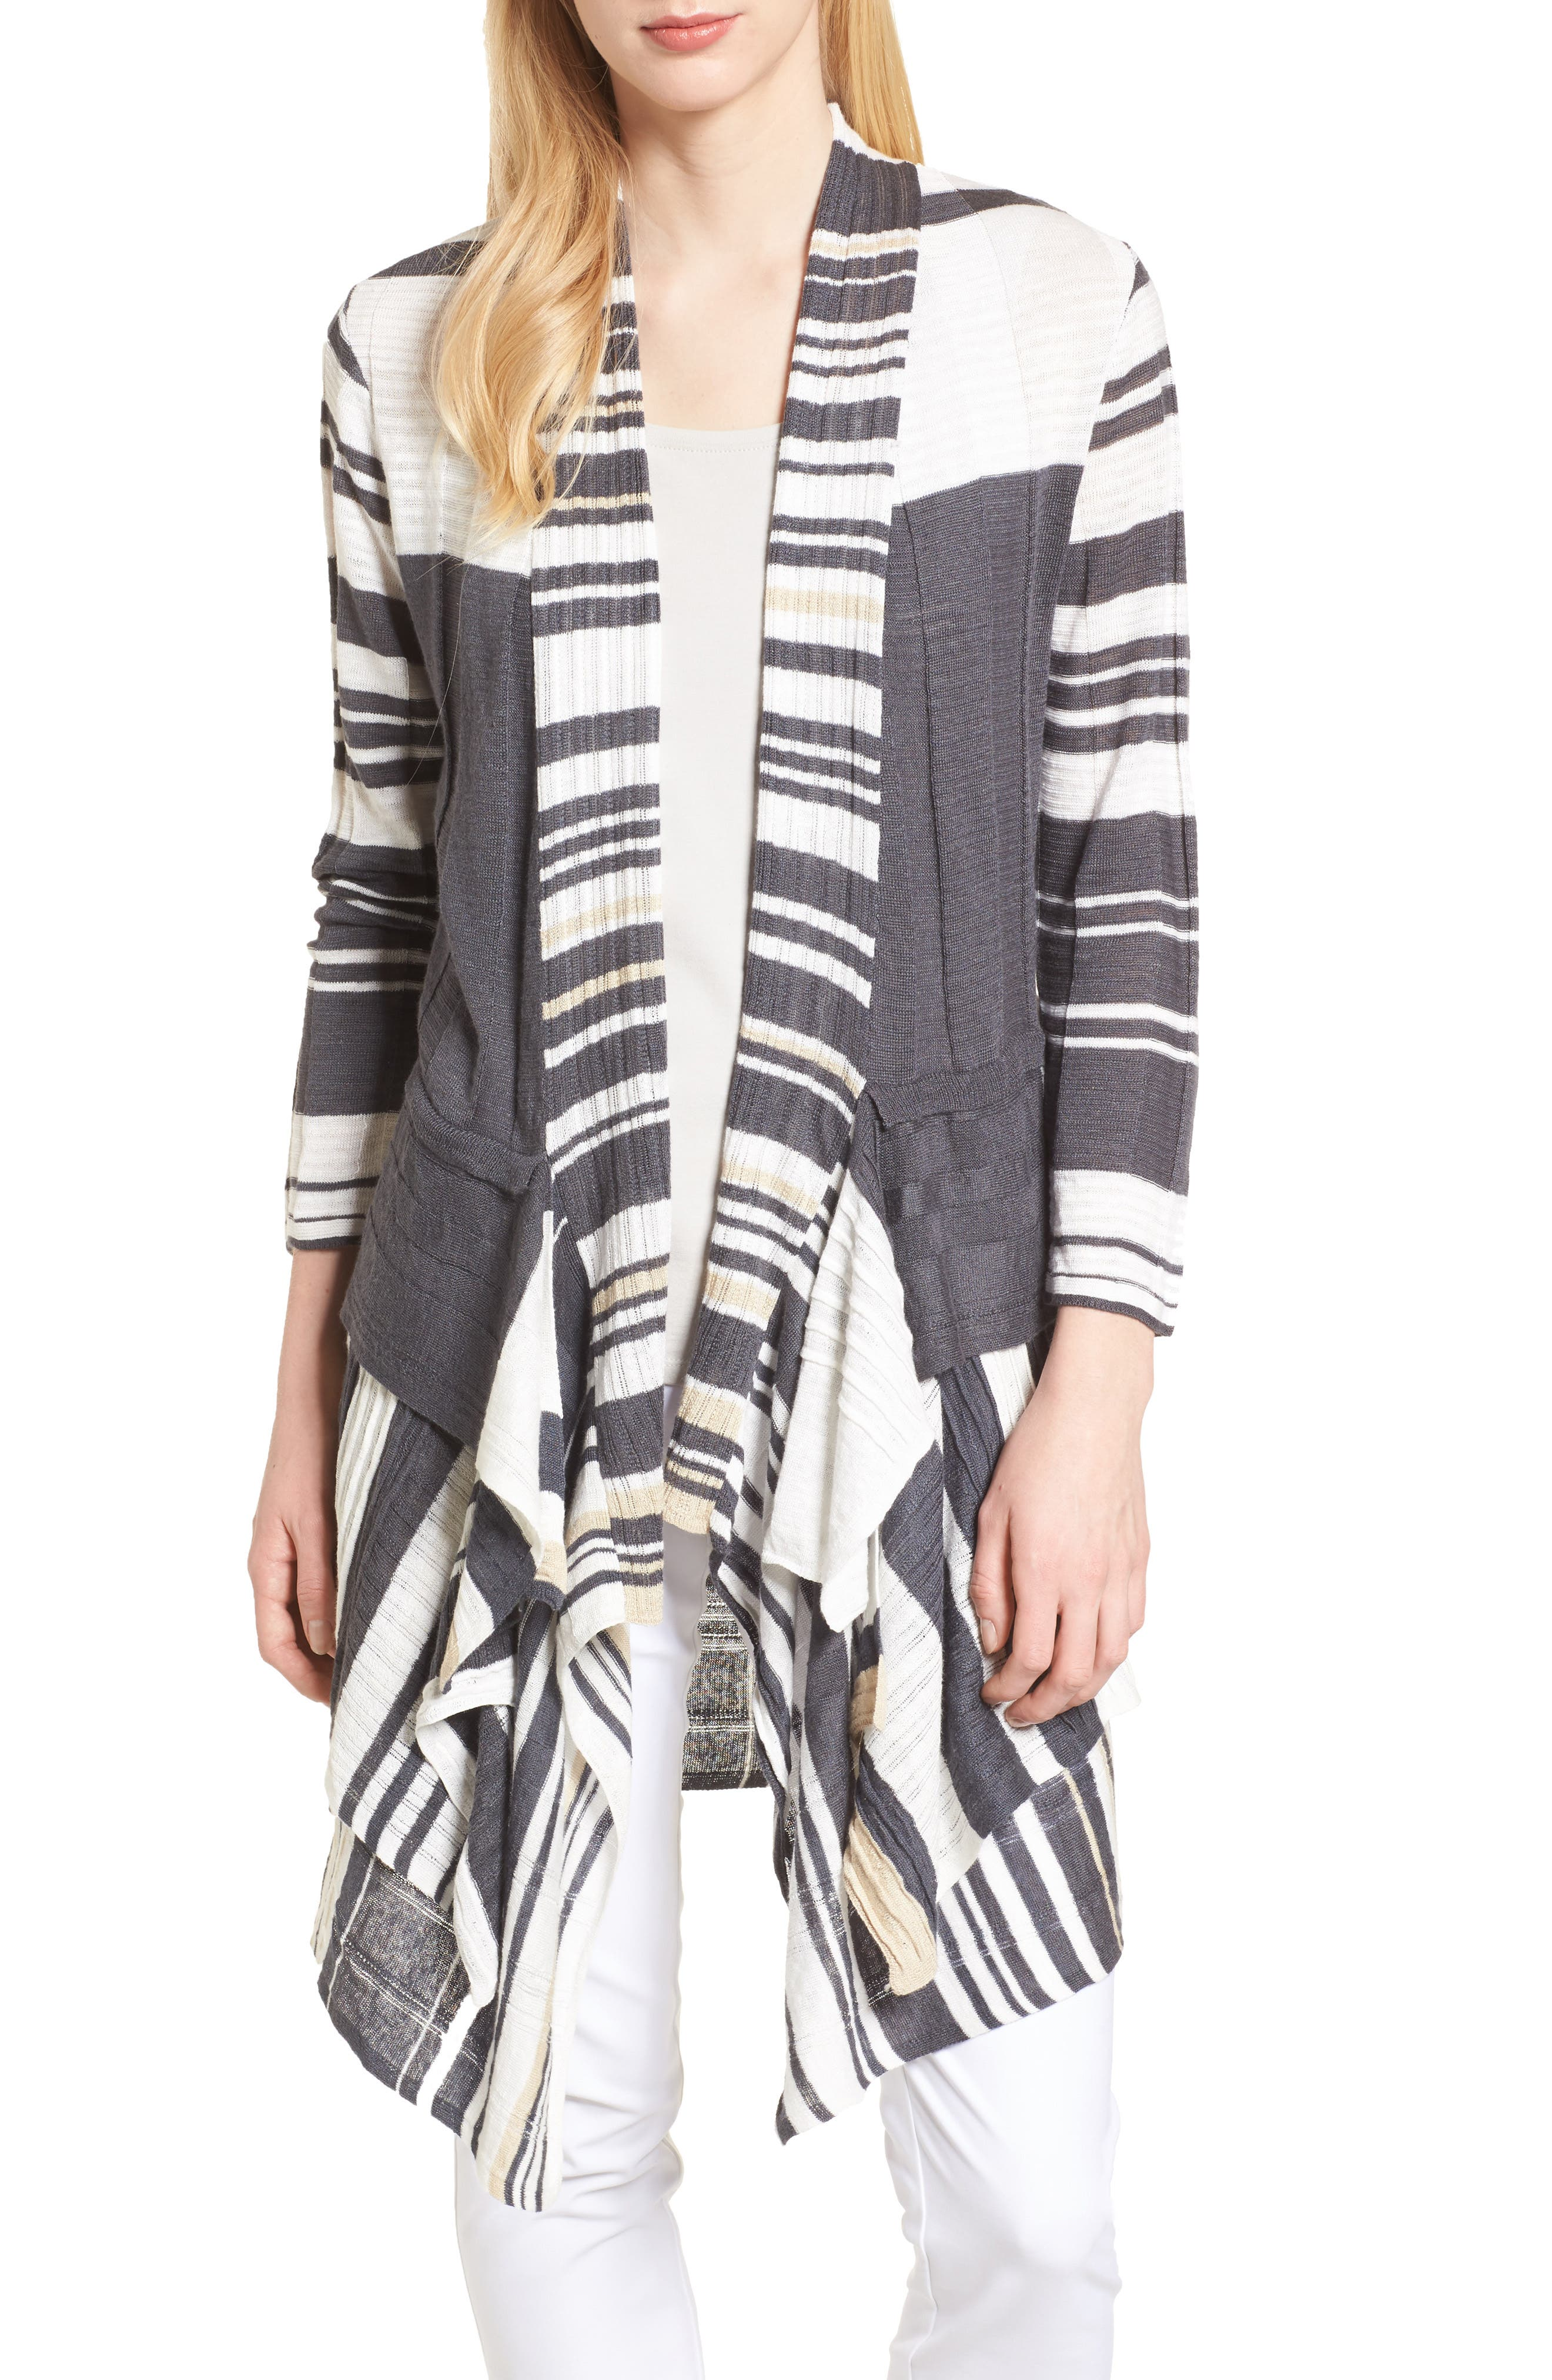 Spice Market Waterfall Linen Blend Cardigan,                         Main,                         color, Multi